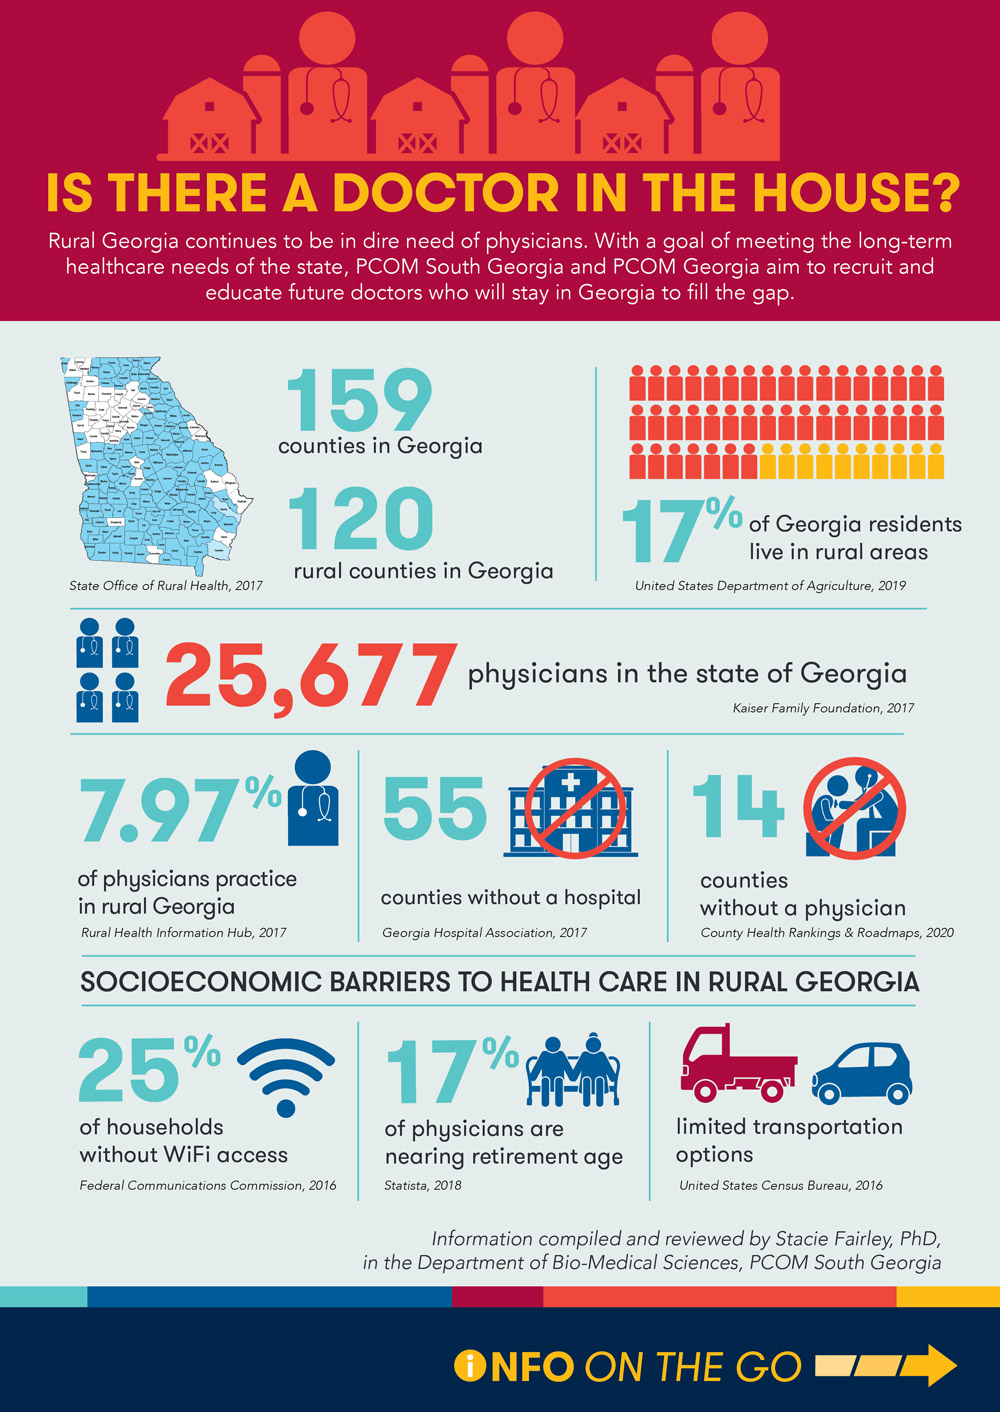 Vector art infographic showing statistics for rural physicians and healthcare shortages in rural Georgia.